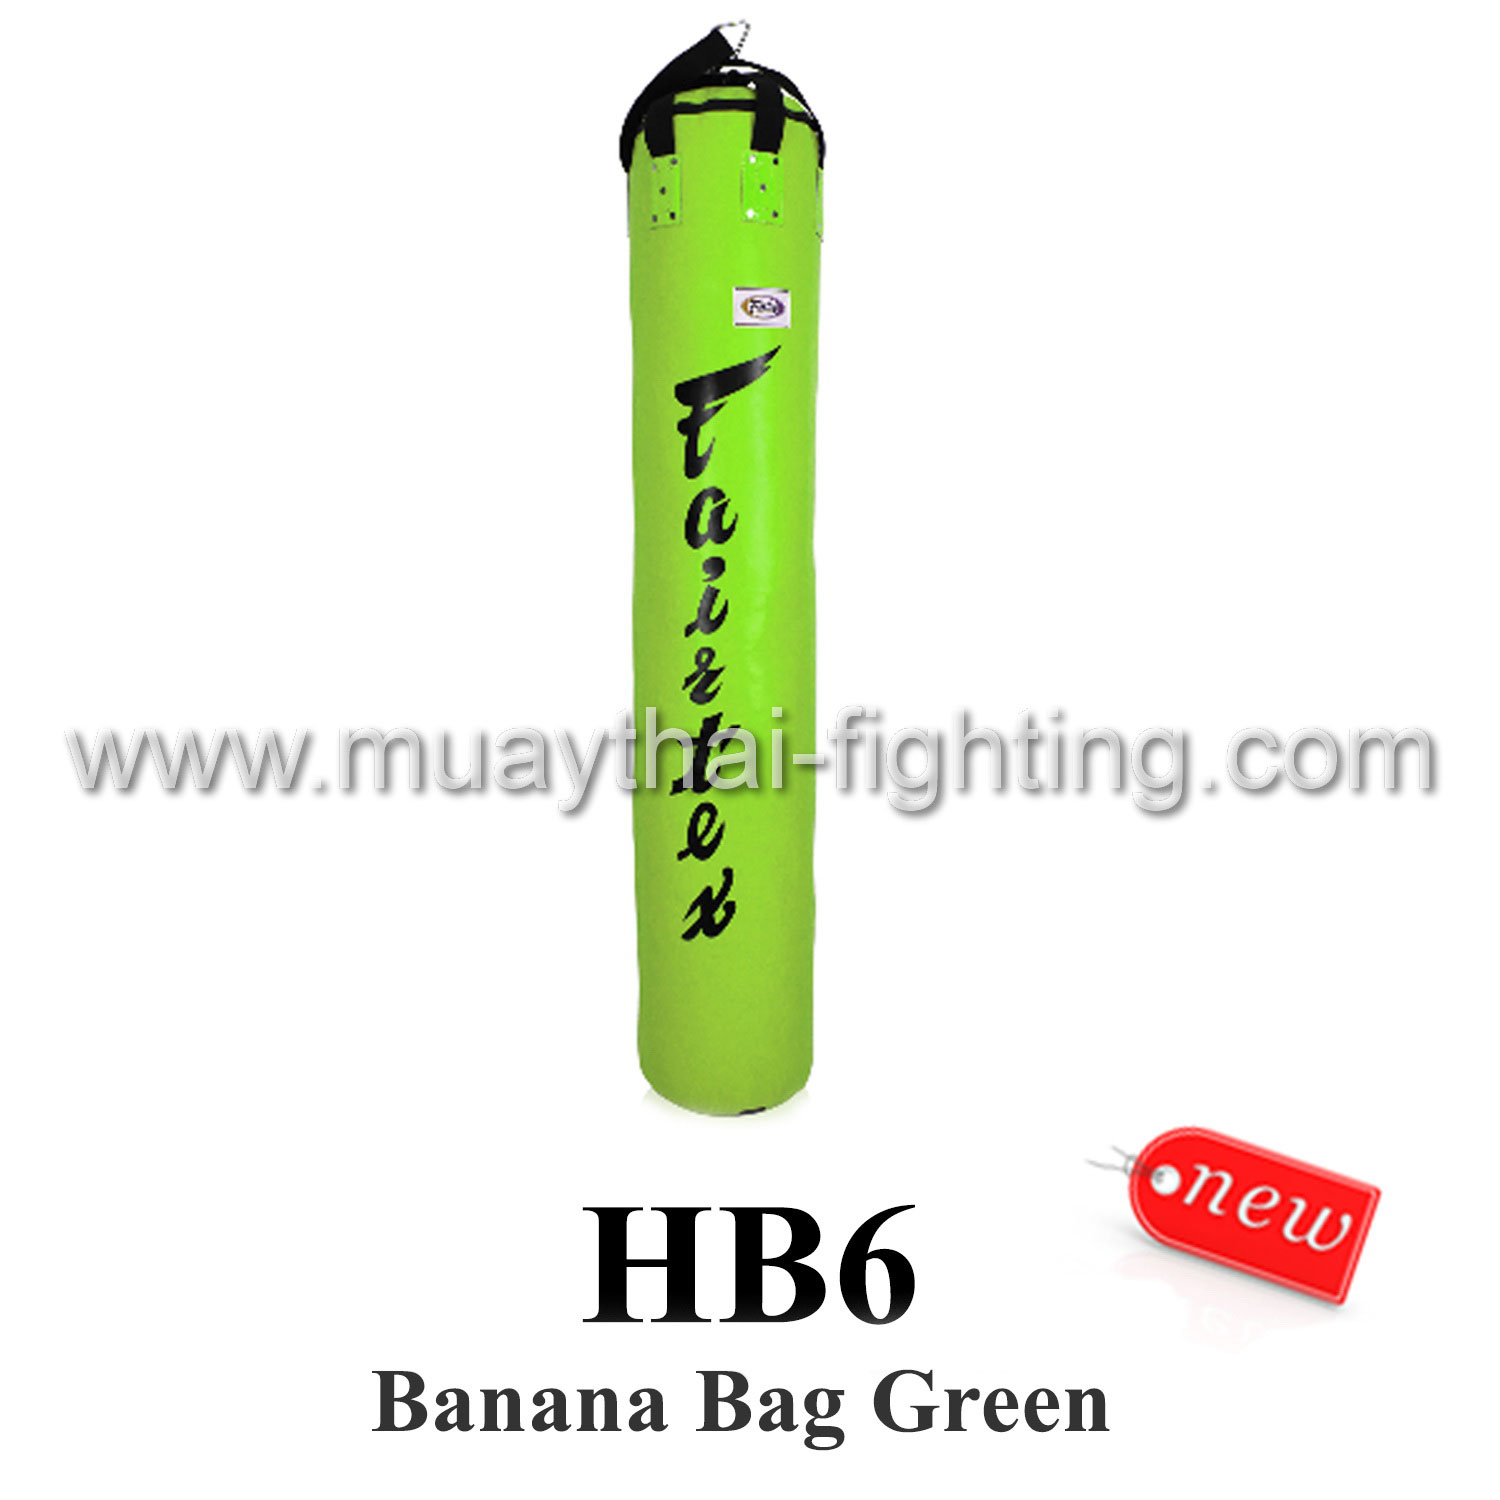 Fairtex 6ft Muay Thai Banana Bag HB6 (UnFilled)- Green